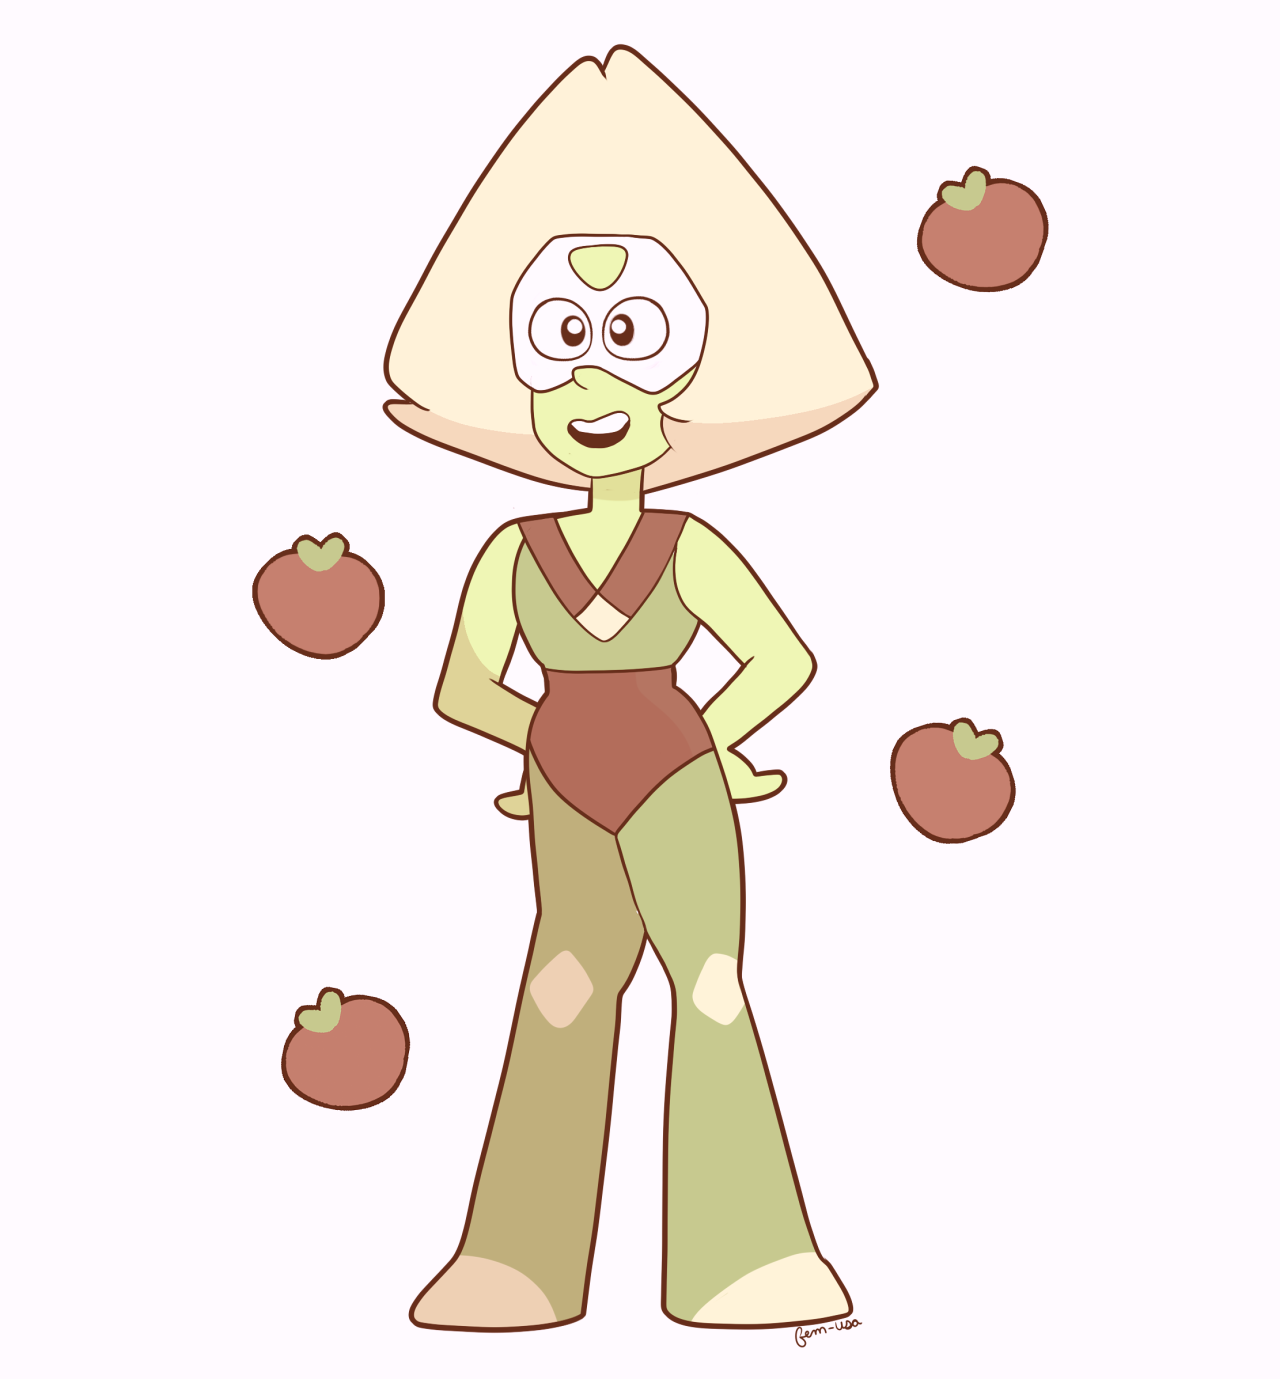 harvest season peridot for @loeden